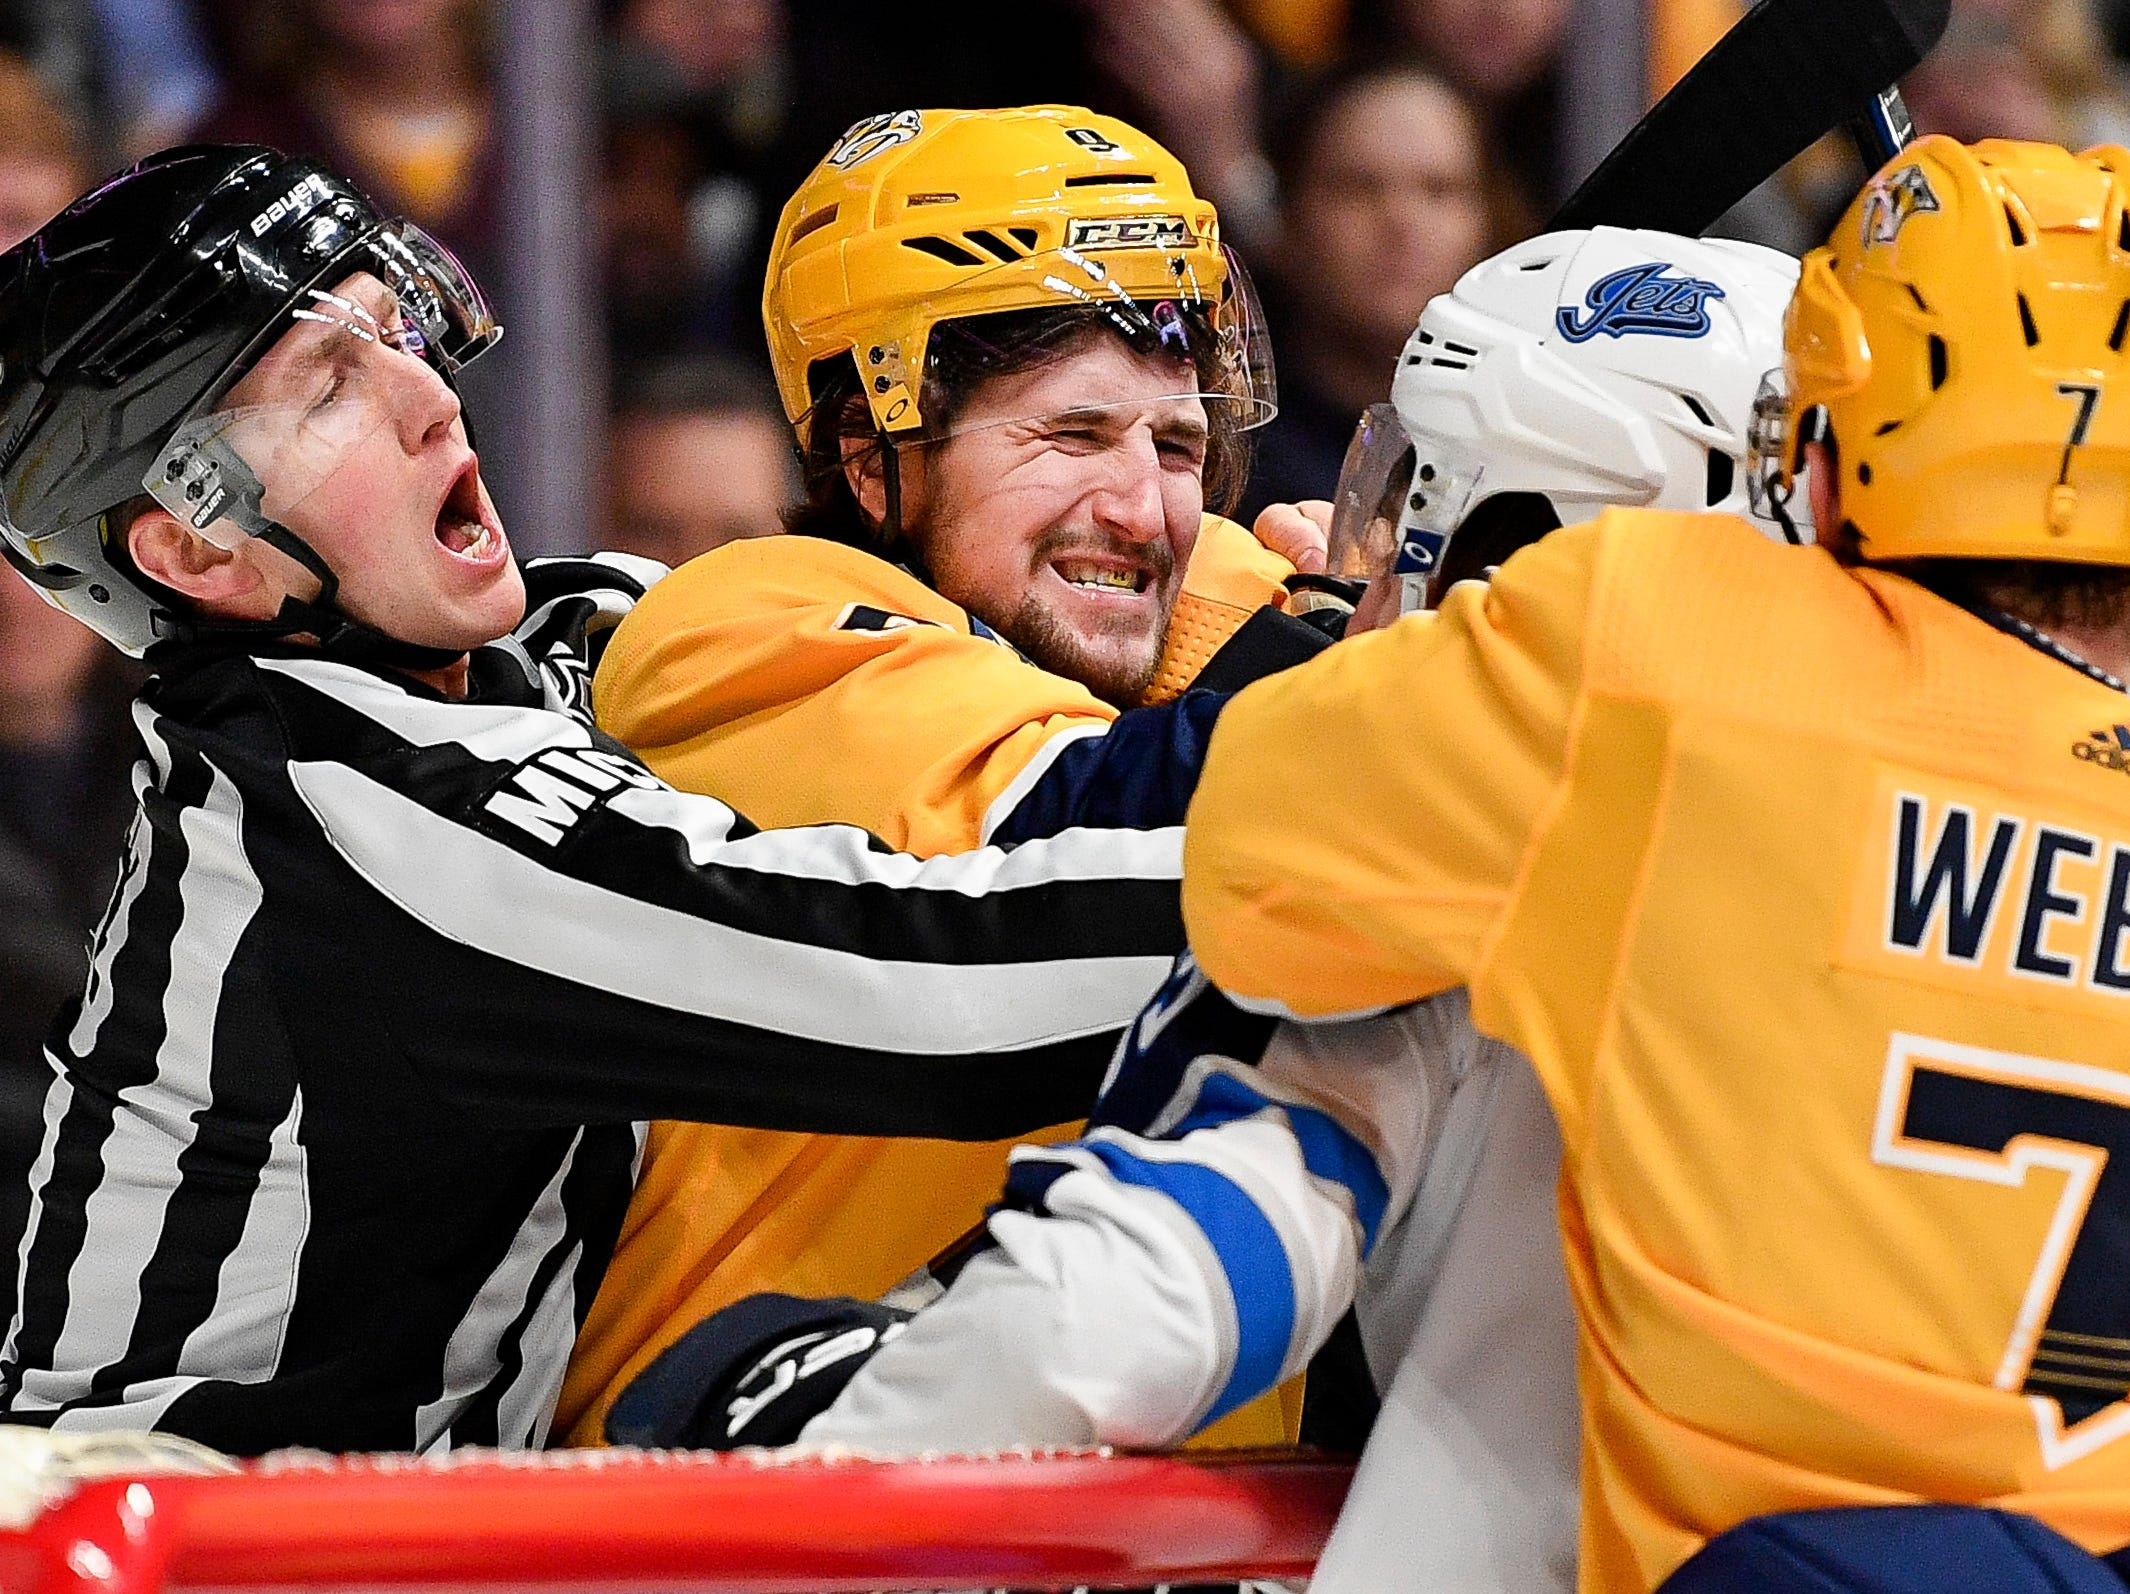 Linesman Trent Knorr (63) holds back Nashville Predators left wing Filip Forsberg (9) during a fight during the second period against the Winnipeg Jets at Bridgestone Arena in Nashville, Tenn., Thursday, Jan. 17, 2019.